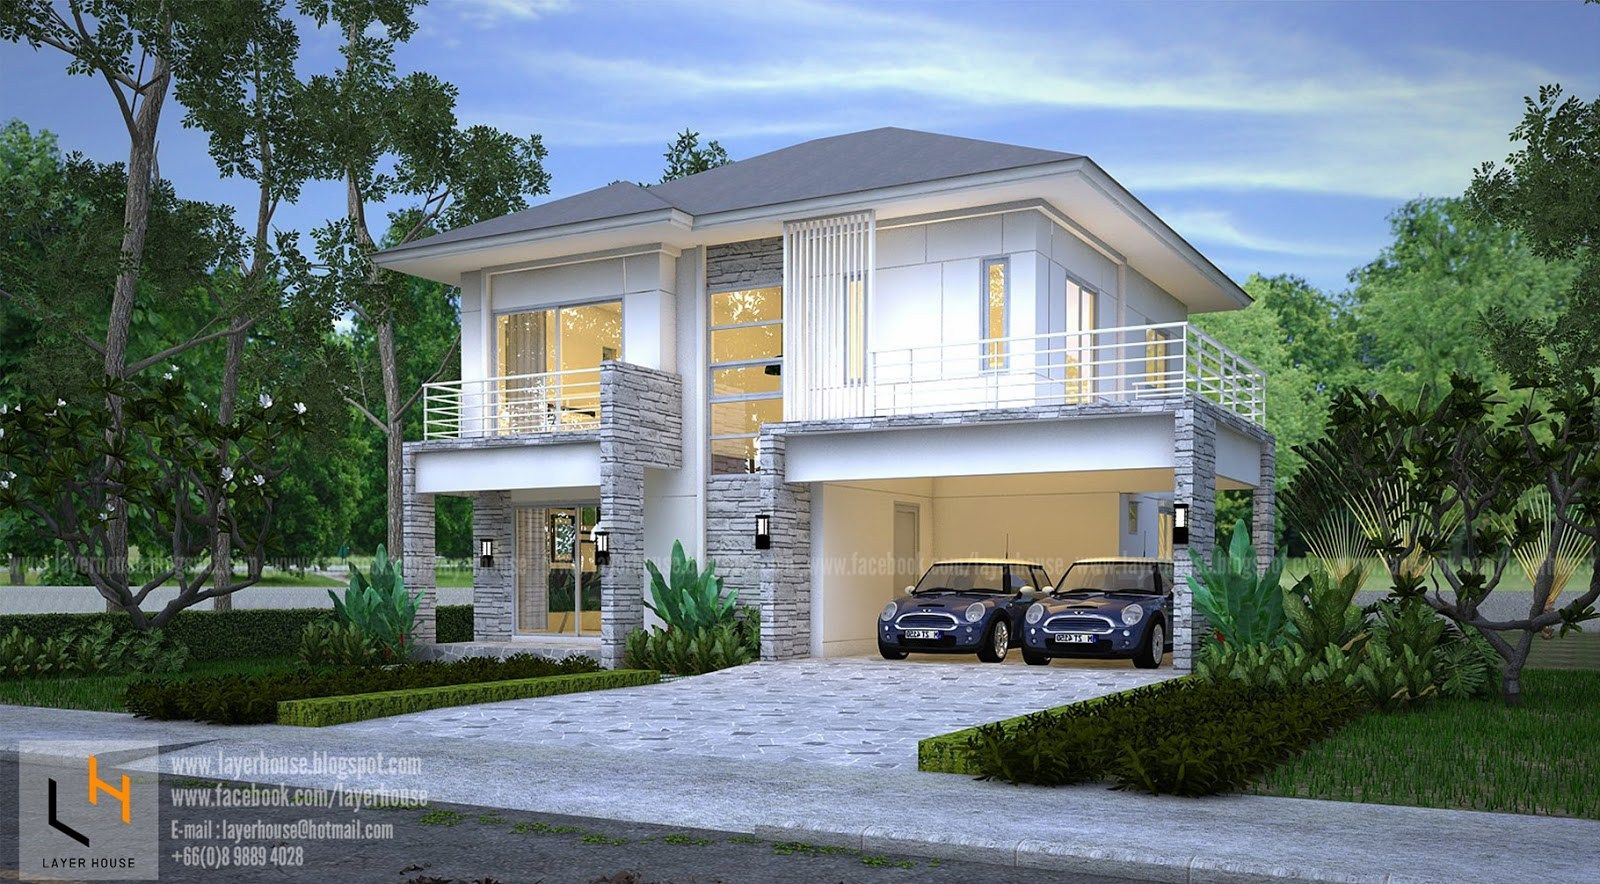 House Plans Idea 11x9m With 3 Bedrooms Samhouseplans In 2020 House Plans House Architecture Design Modern House Plans